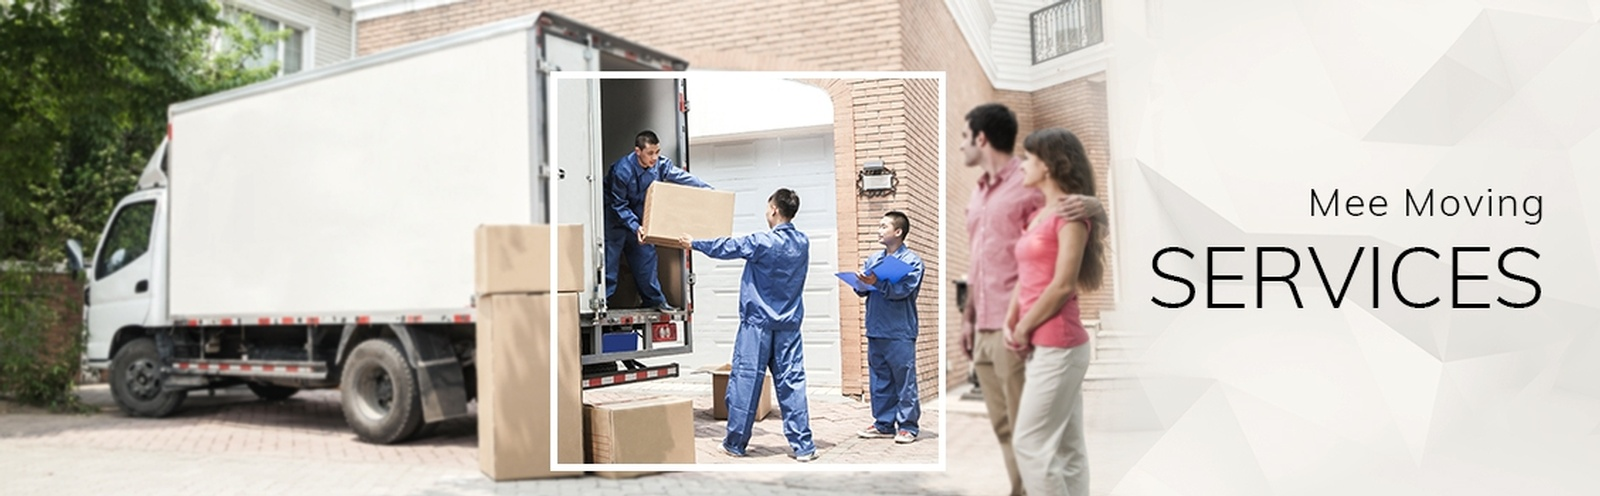 Furniture Movers Calgary